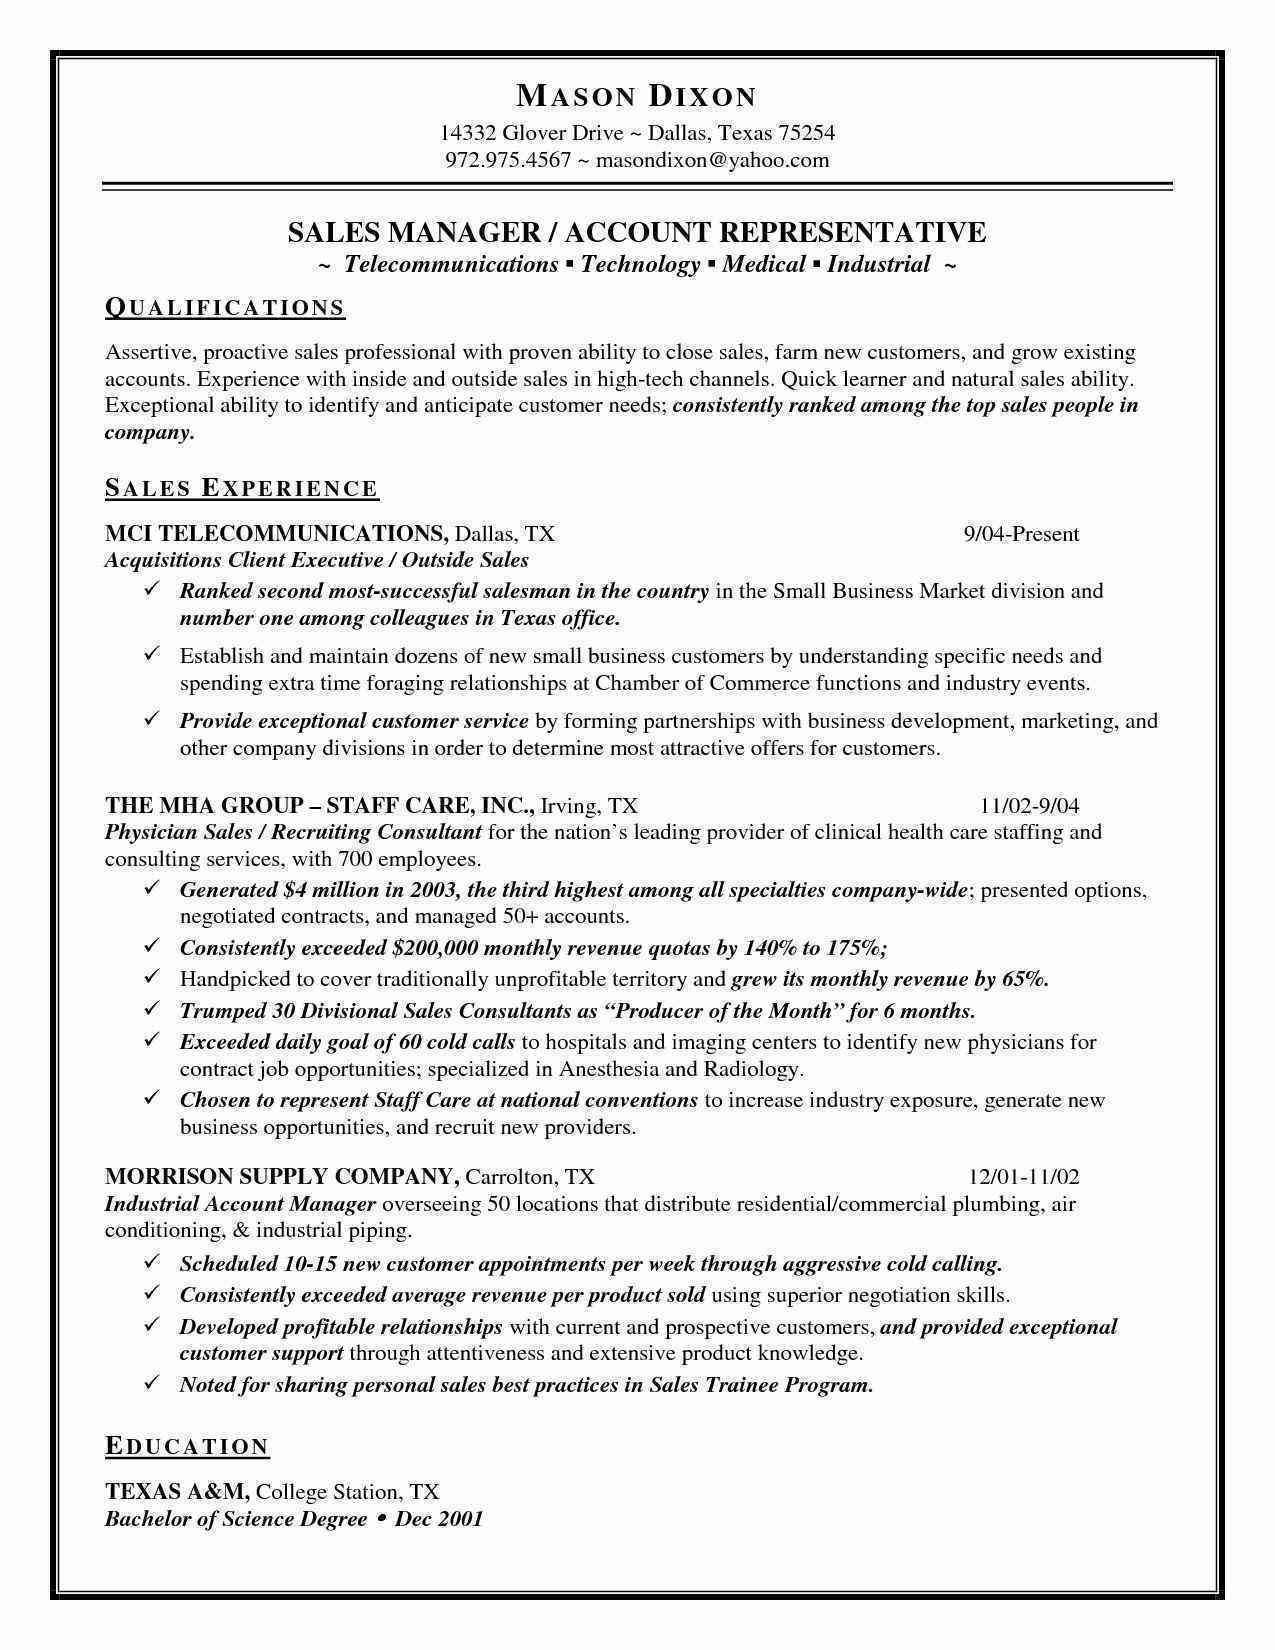 Retail Sales Resume Template - Retail Resume Sample Best Sales Resume Sample New Retail Resume